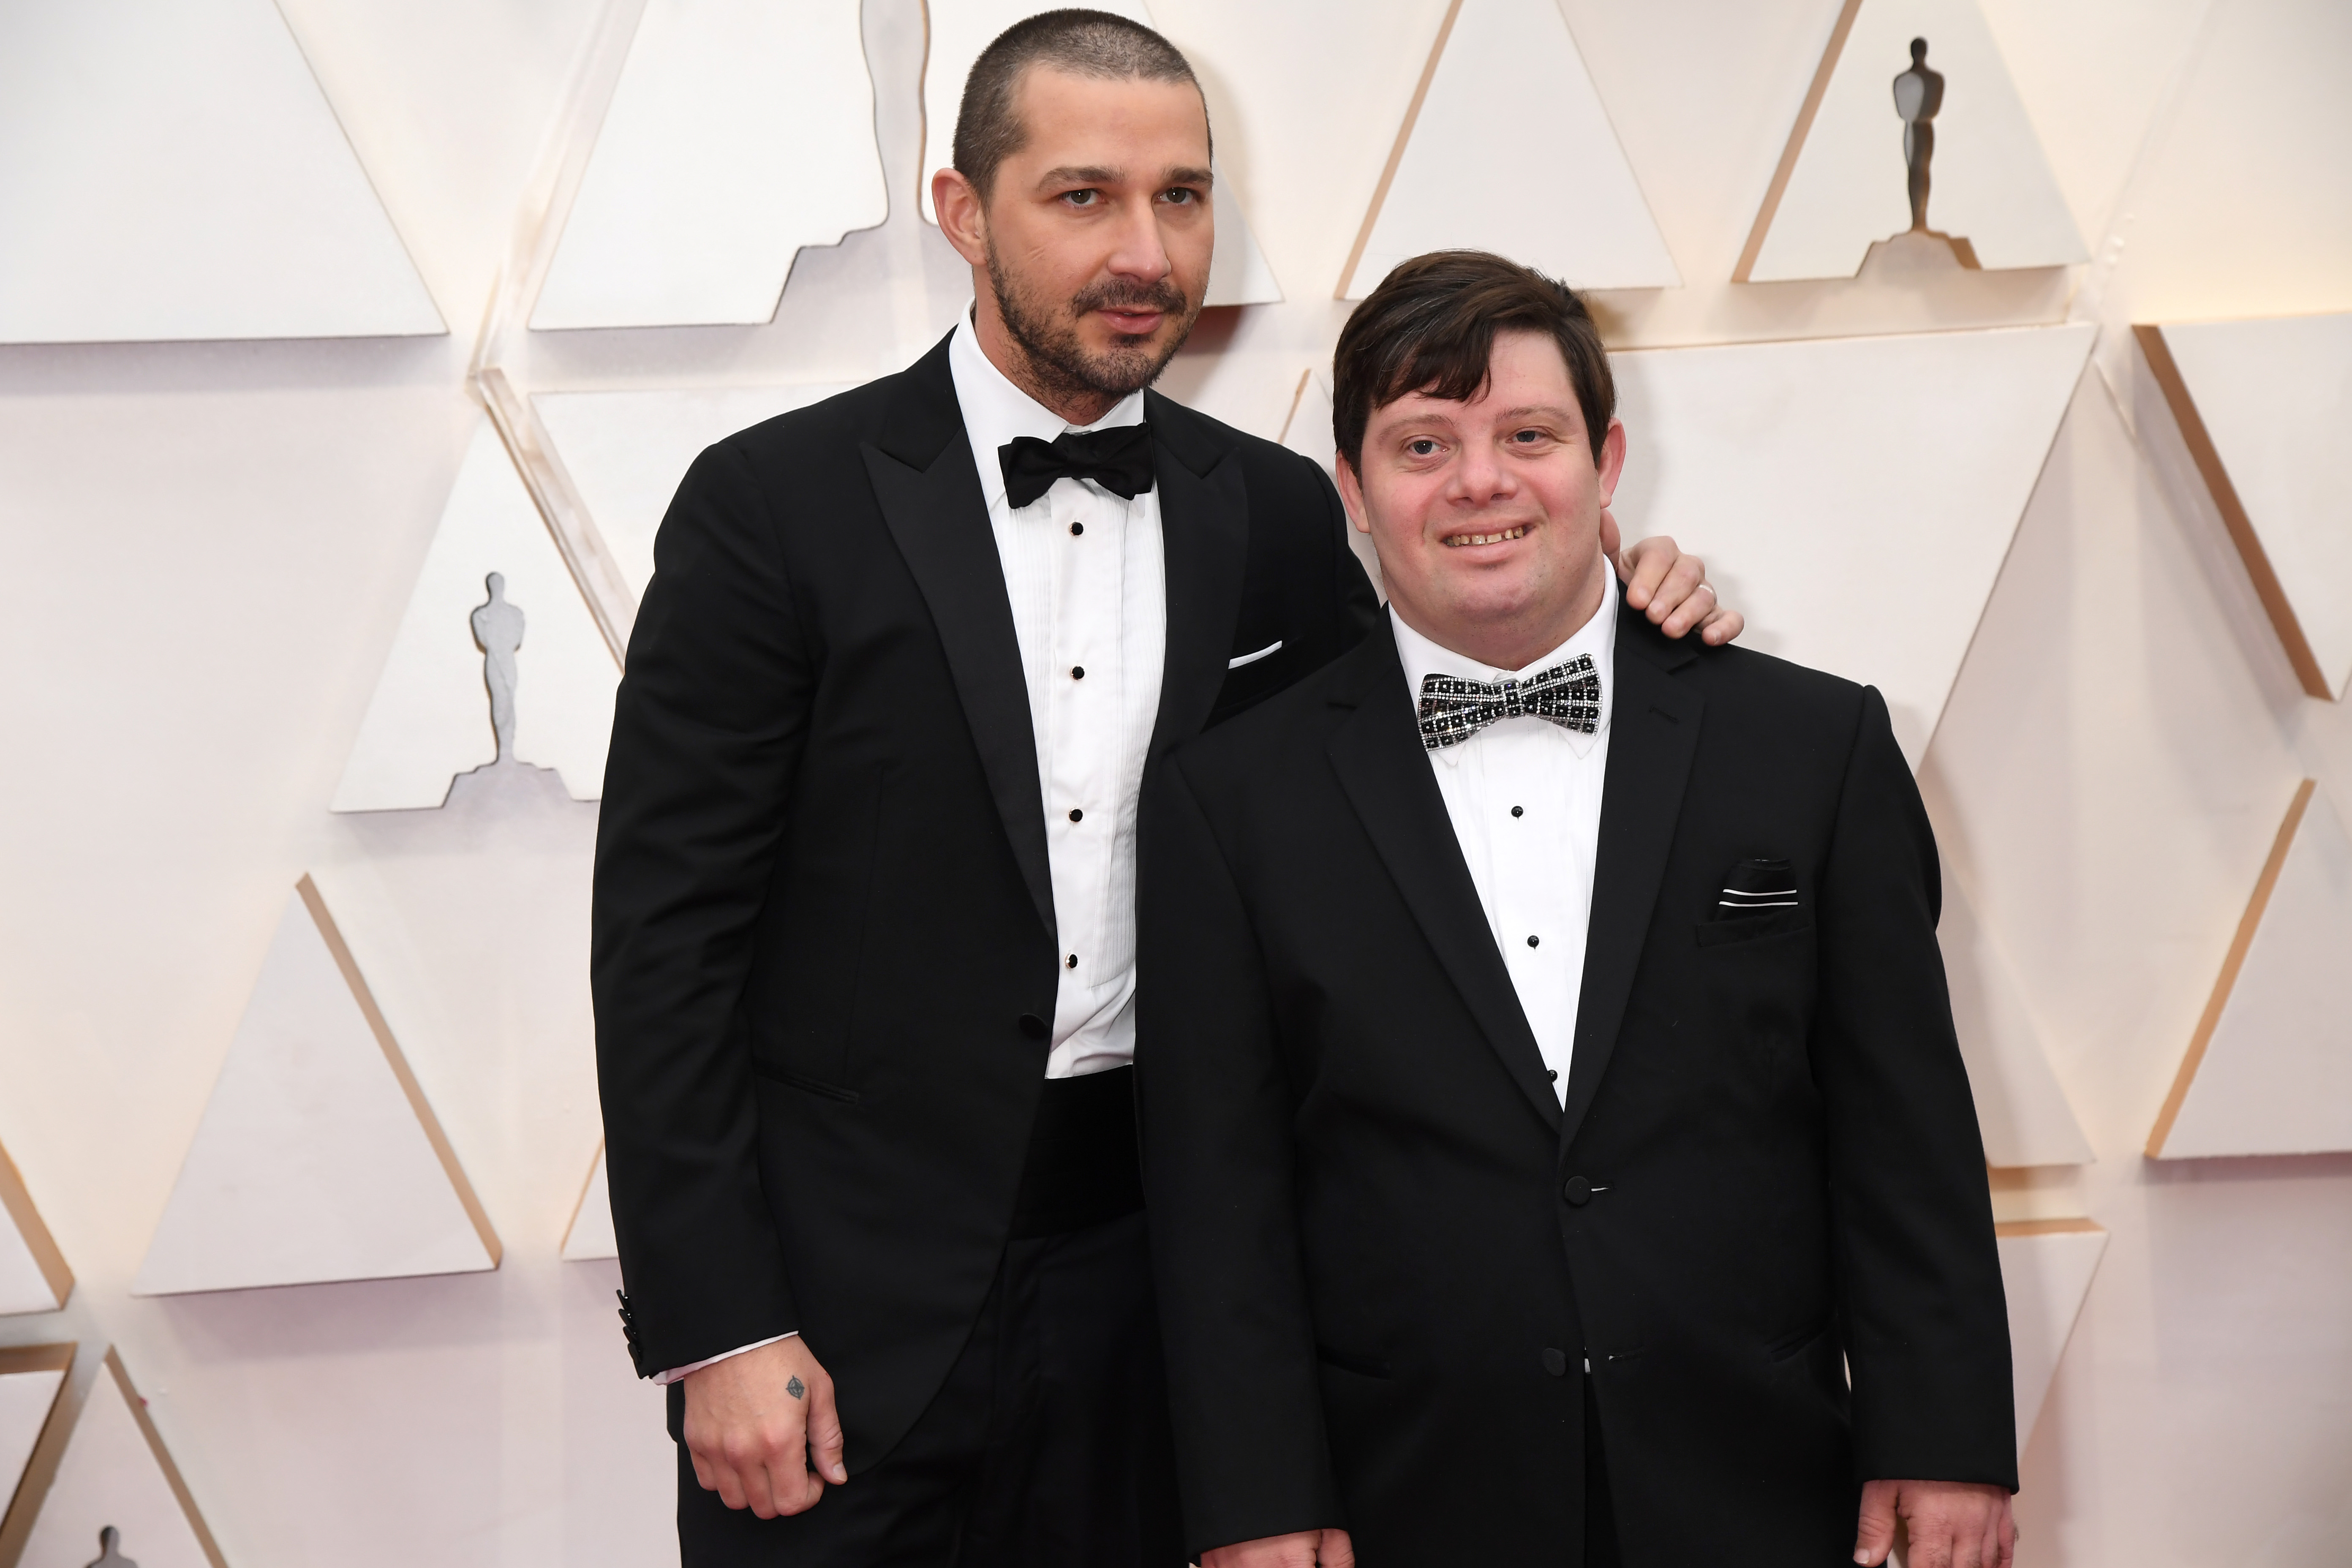 Shia LaBeouf and Zack Gottsagen at an event for The Oscars (2020)